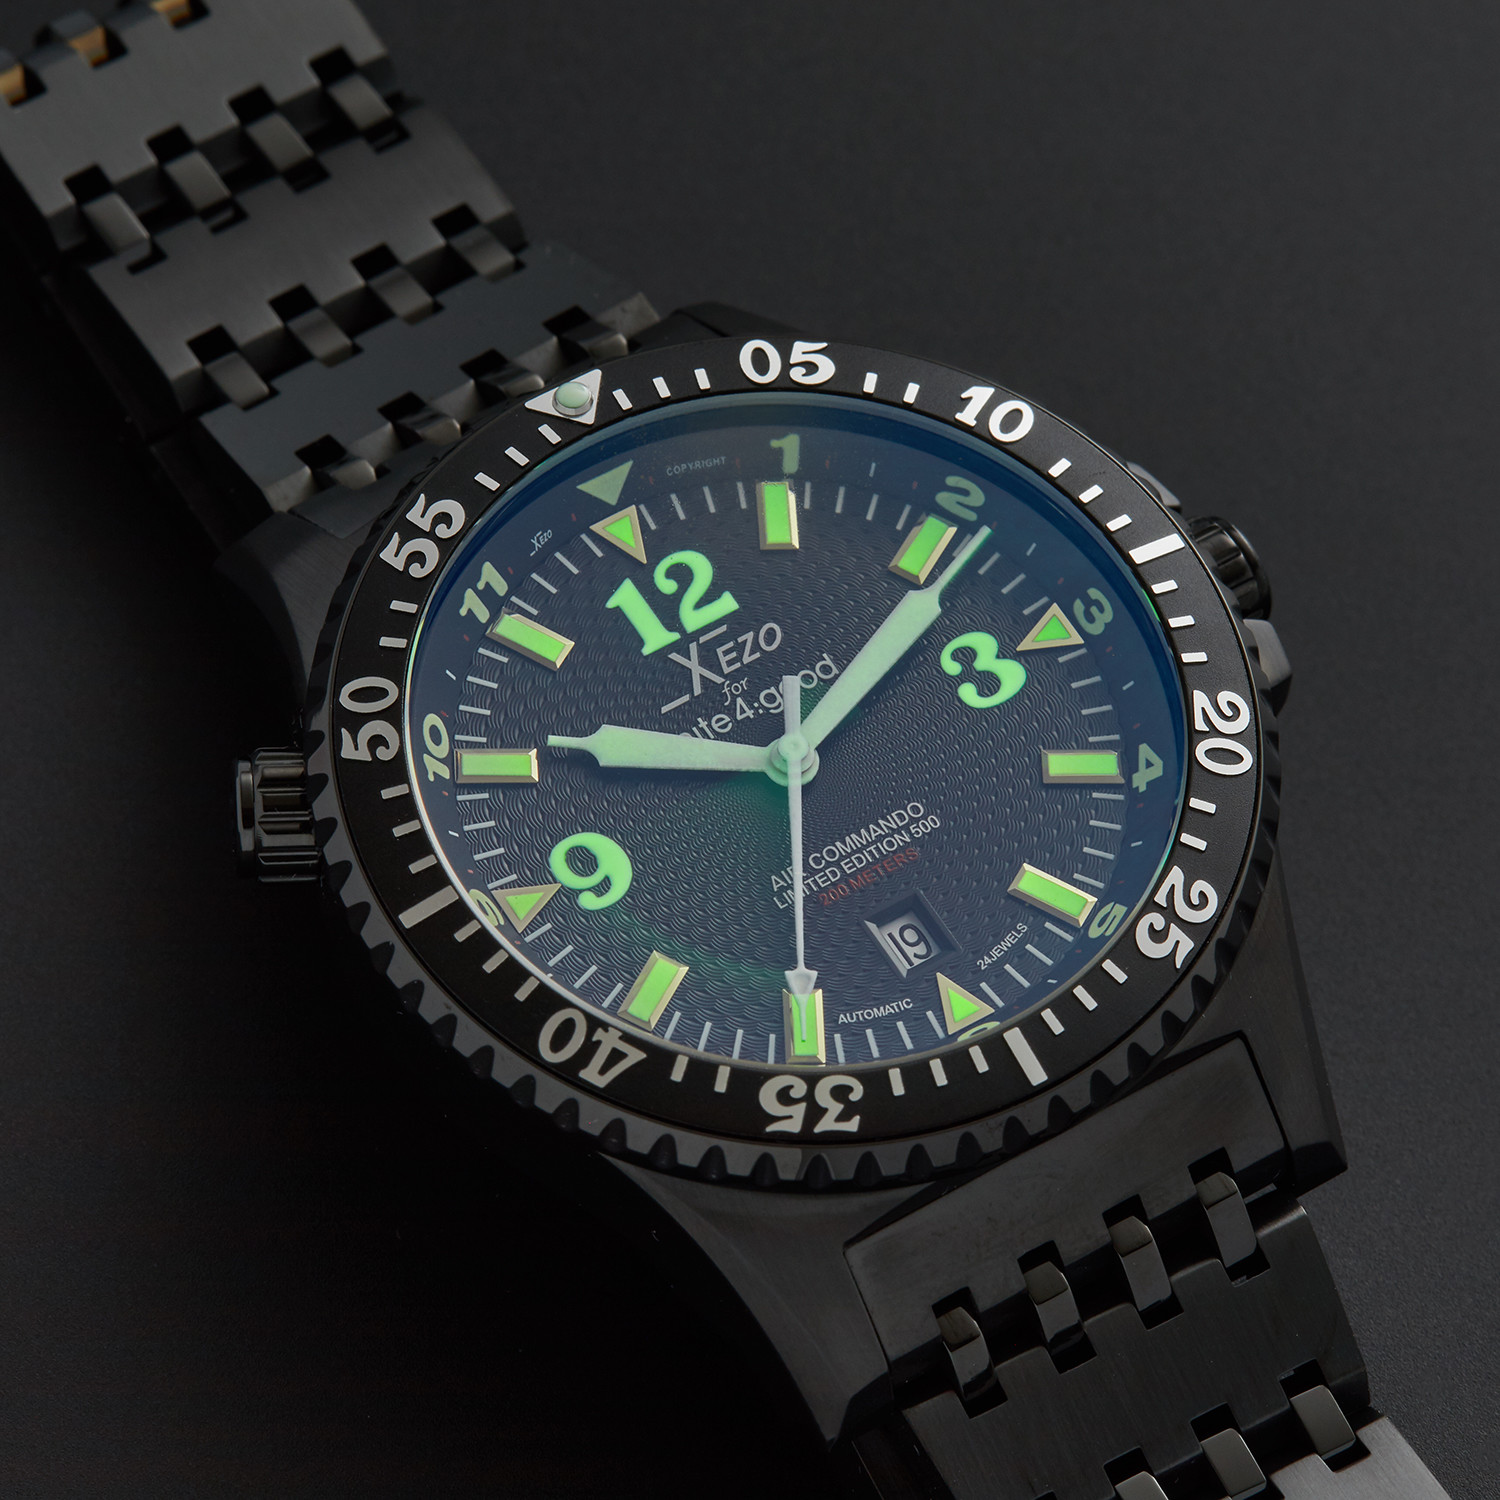 Xezo air commando diver pilot automatic d45 bl xezo touch of modern for Xezo watches